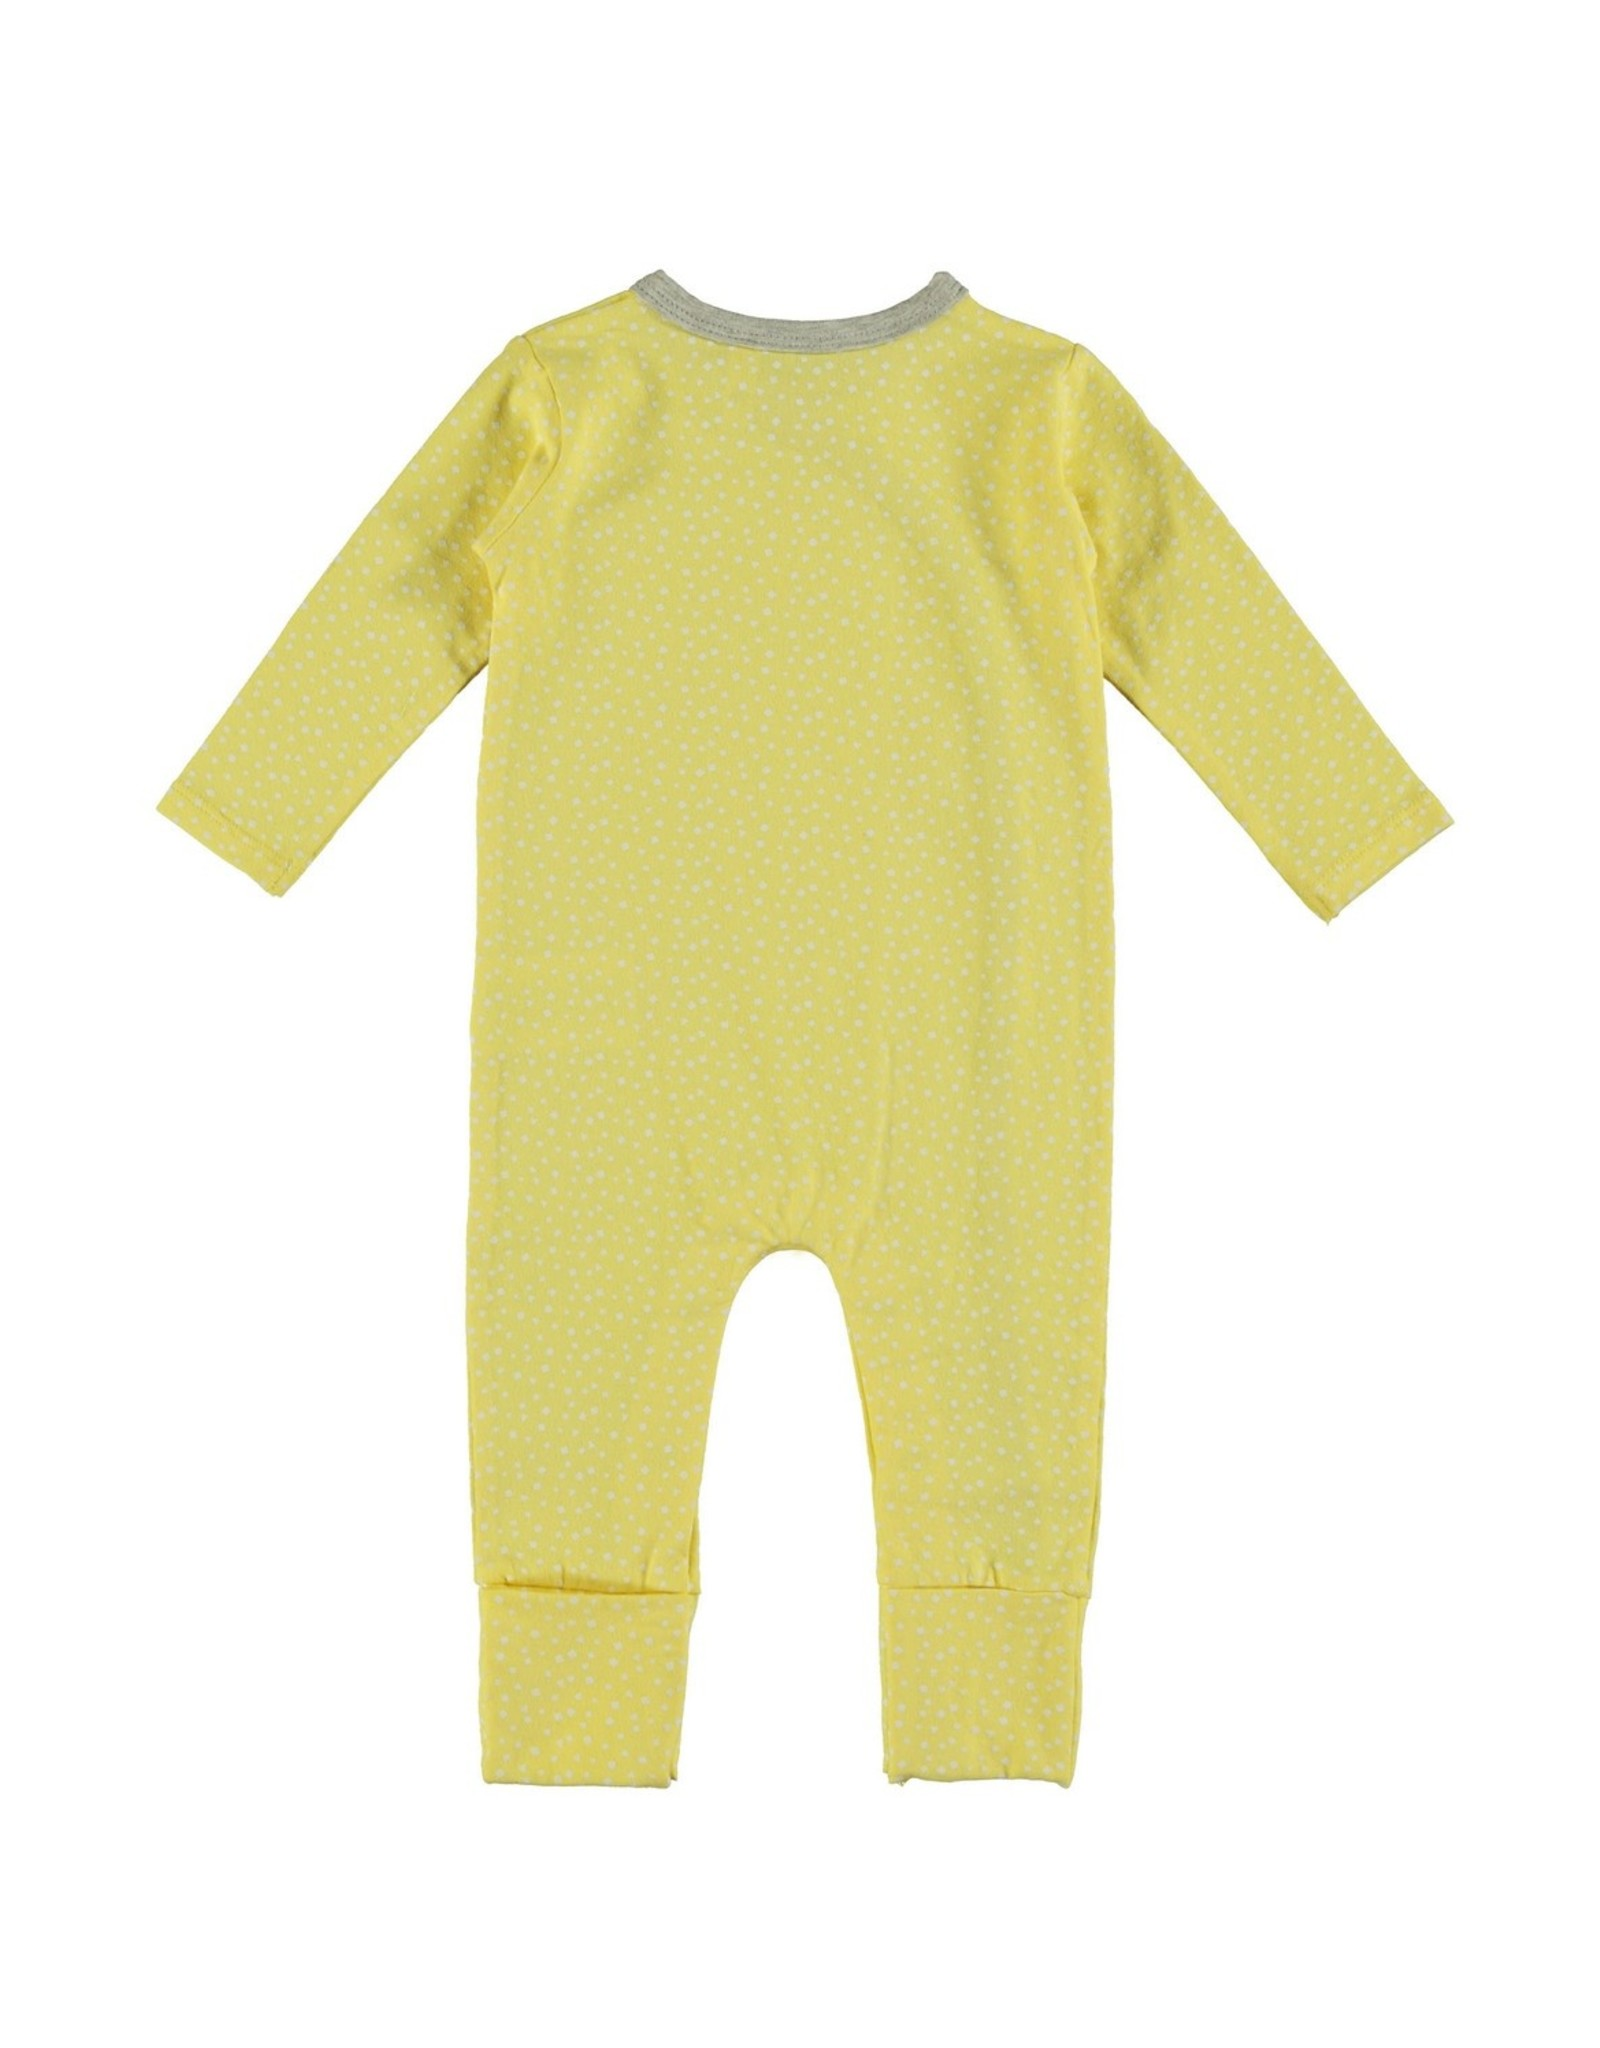 Bampidano New Born overall allover print with envelope feet, yellow allover